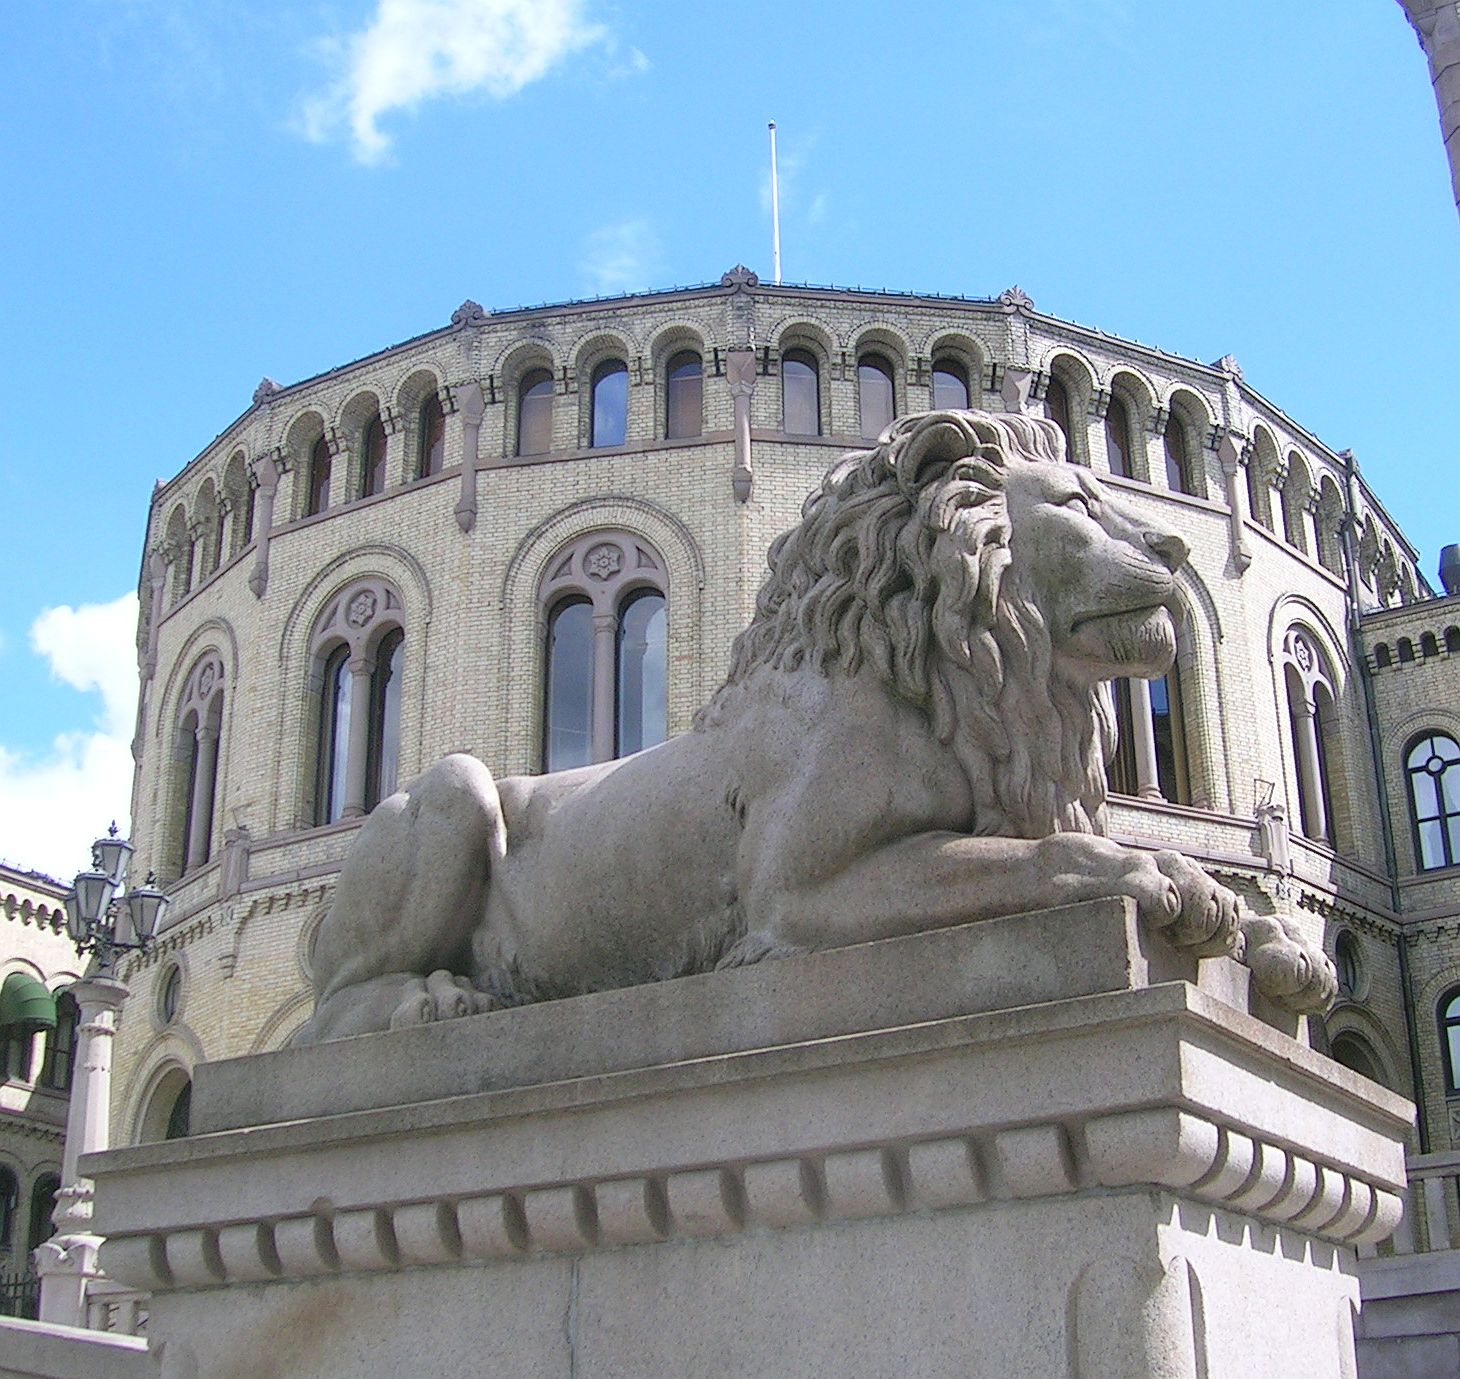 The Norwegian Parliament, Stortinget